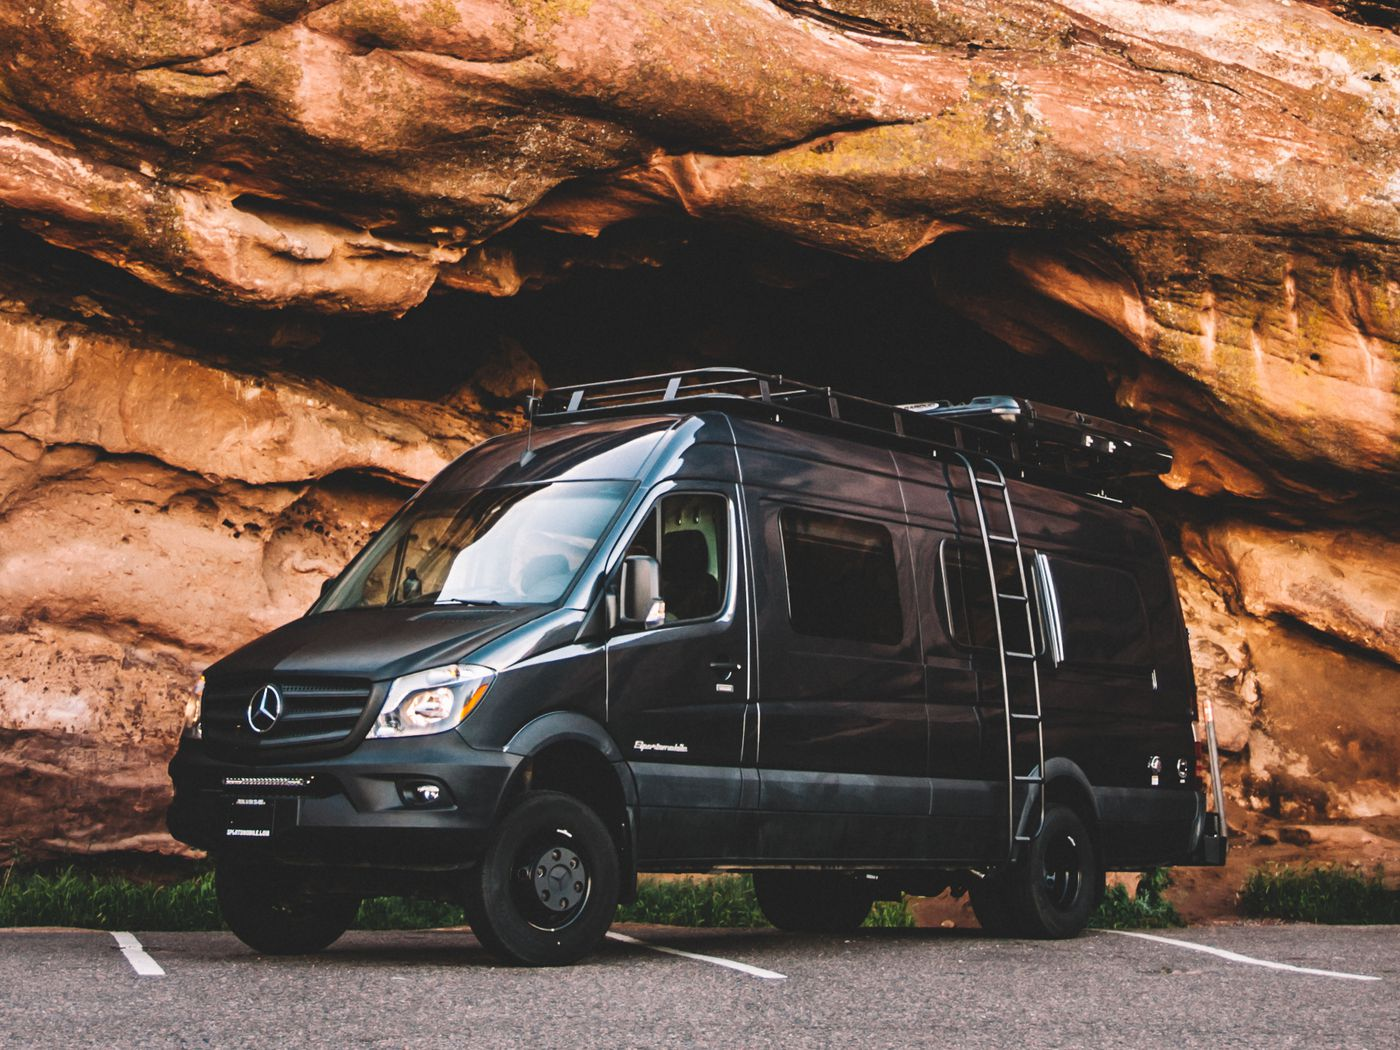 Used Rvs For Sale >> Rv Class Types Explained A Guide To Every Category Of Camper Curbed